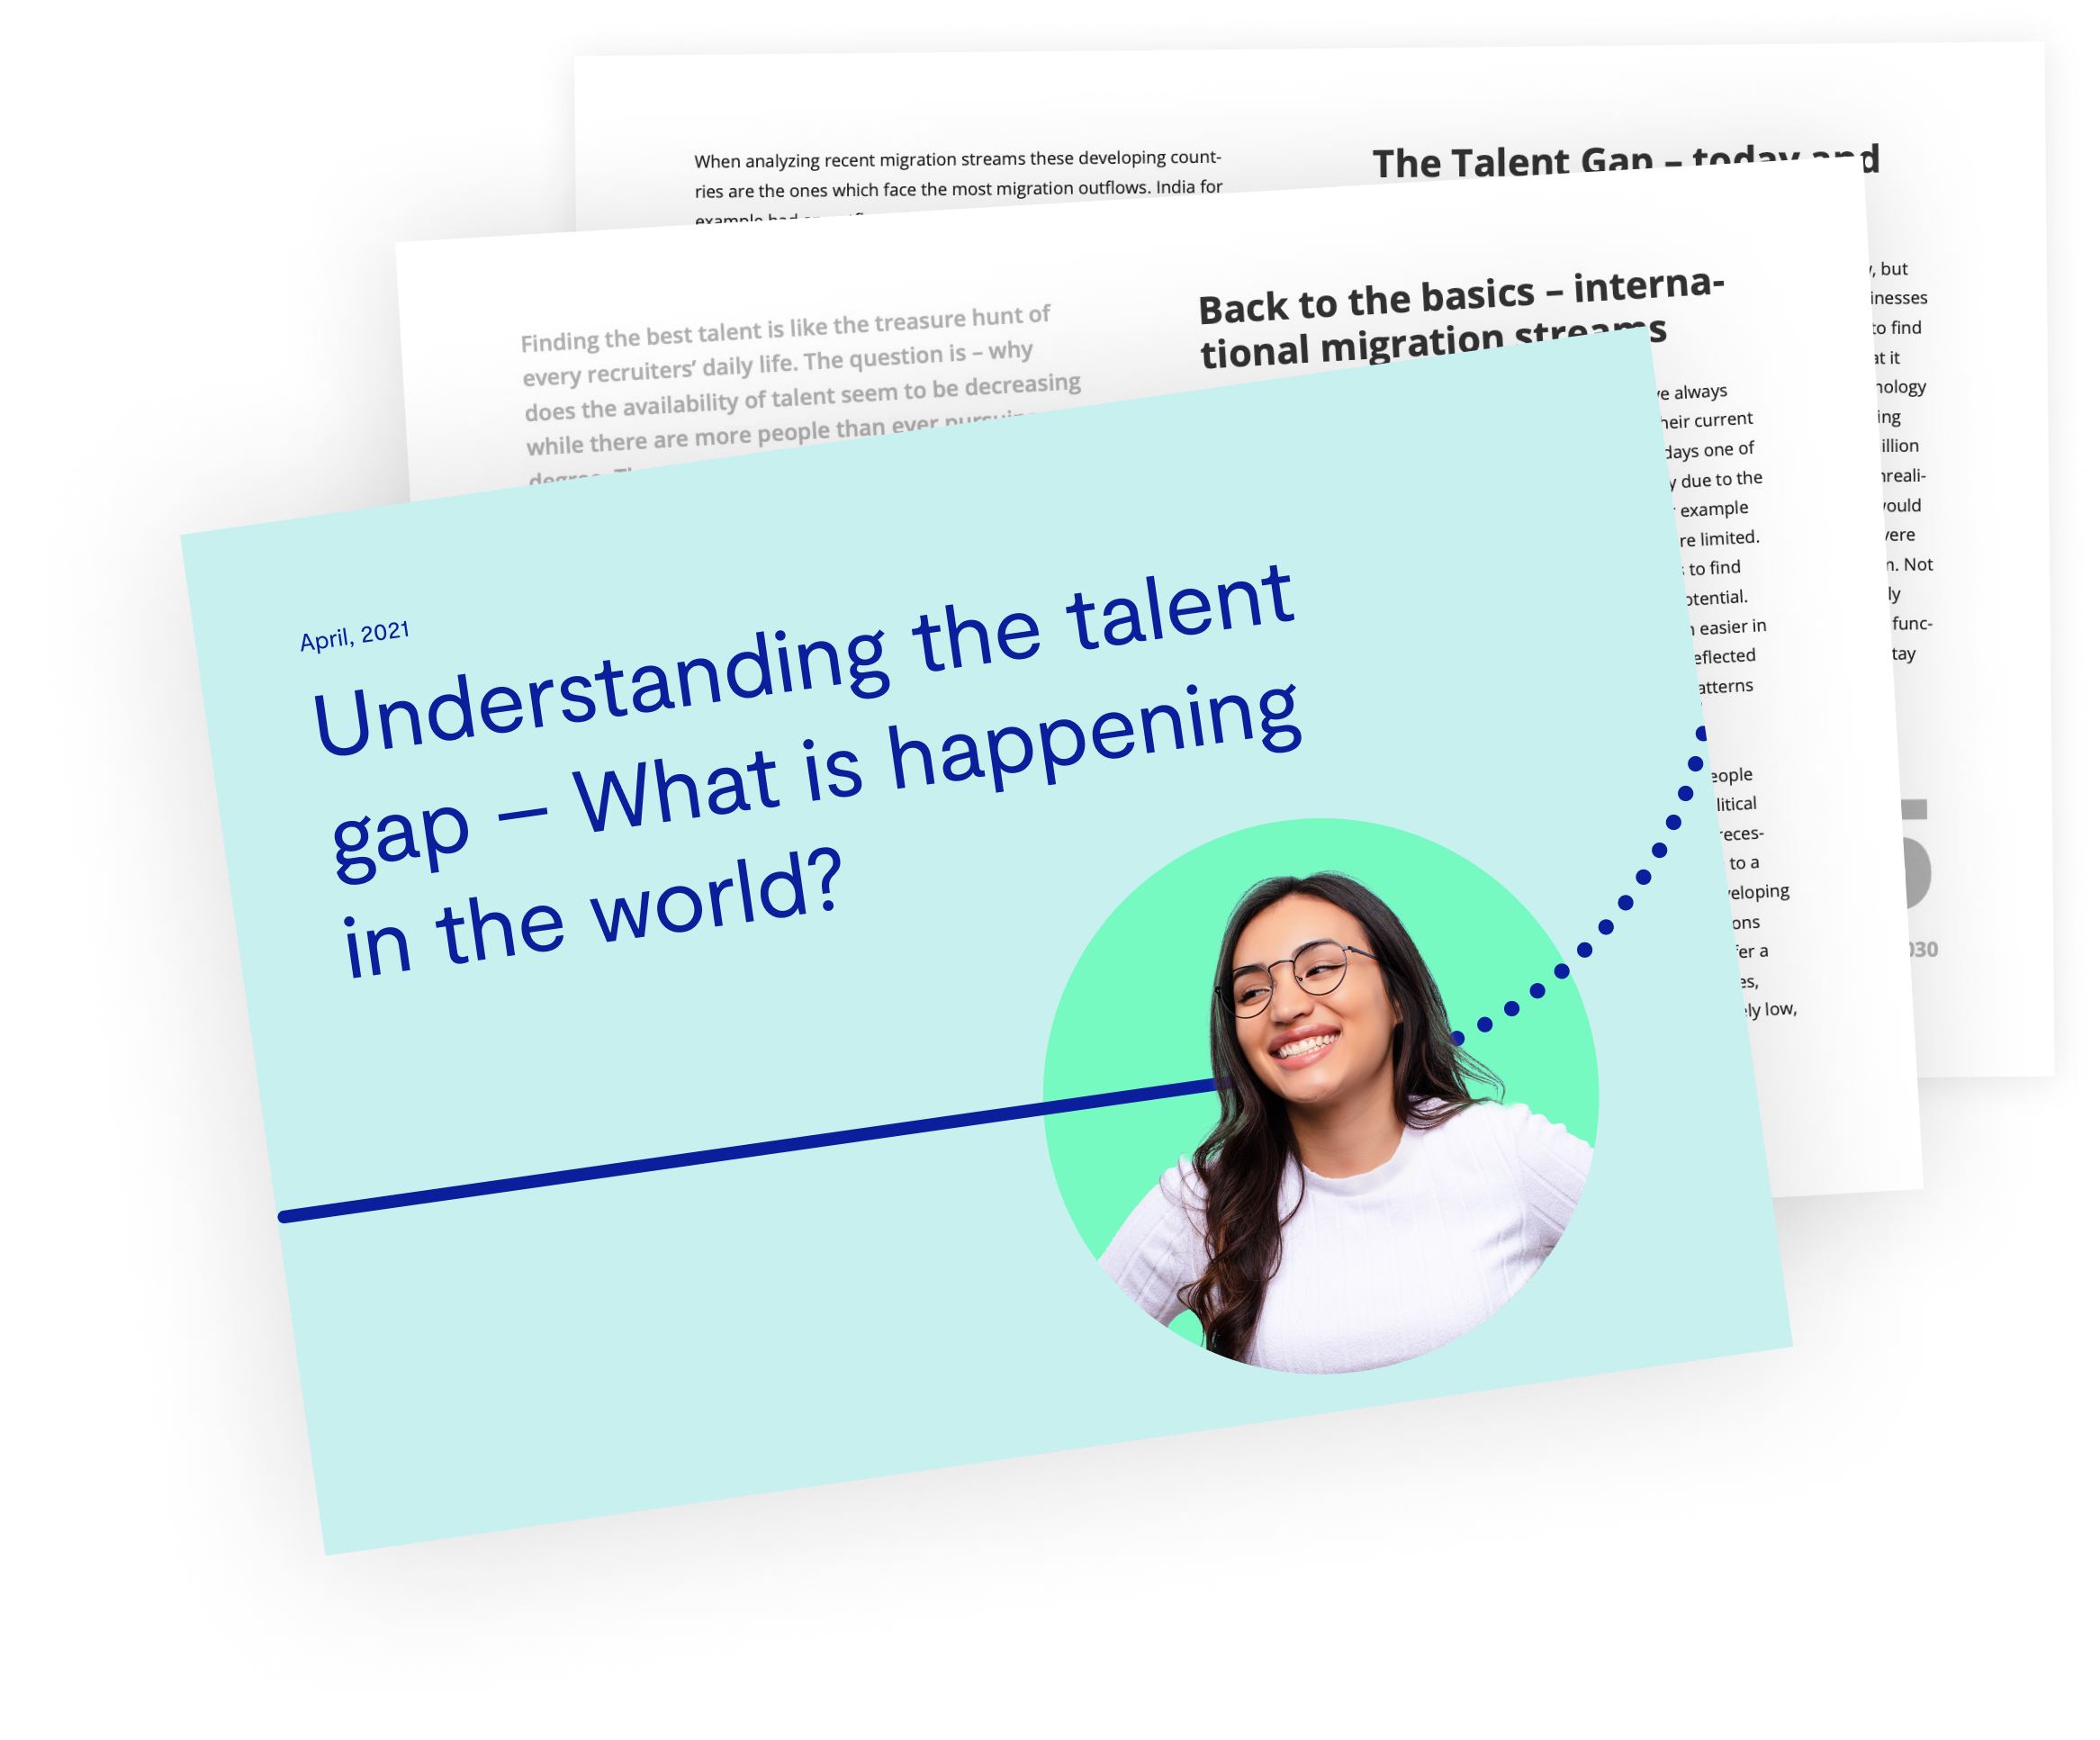 Understanding the talent gap – What is happening in the world?